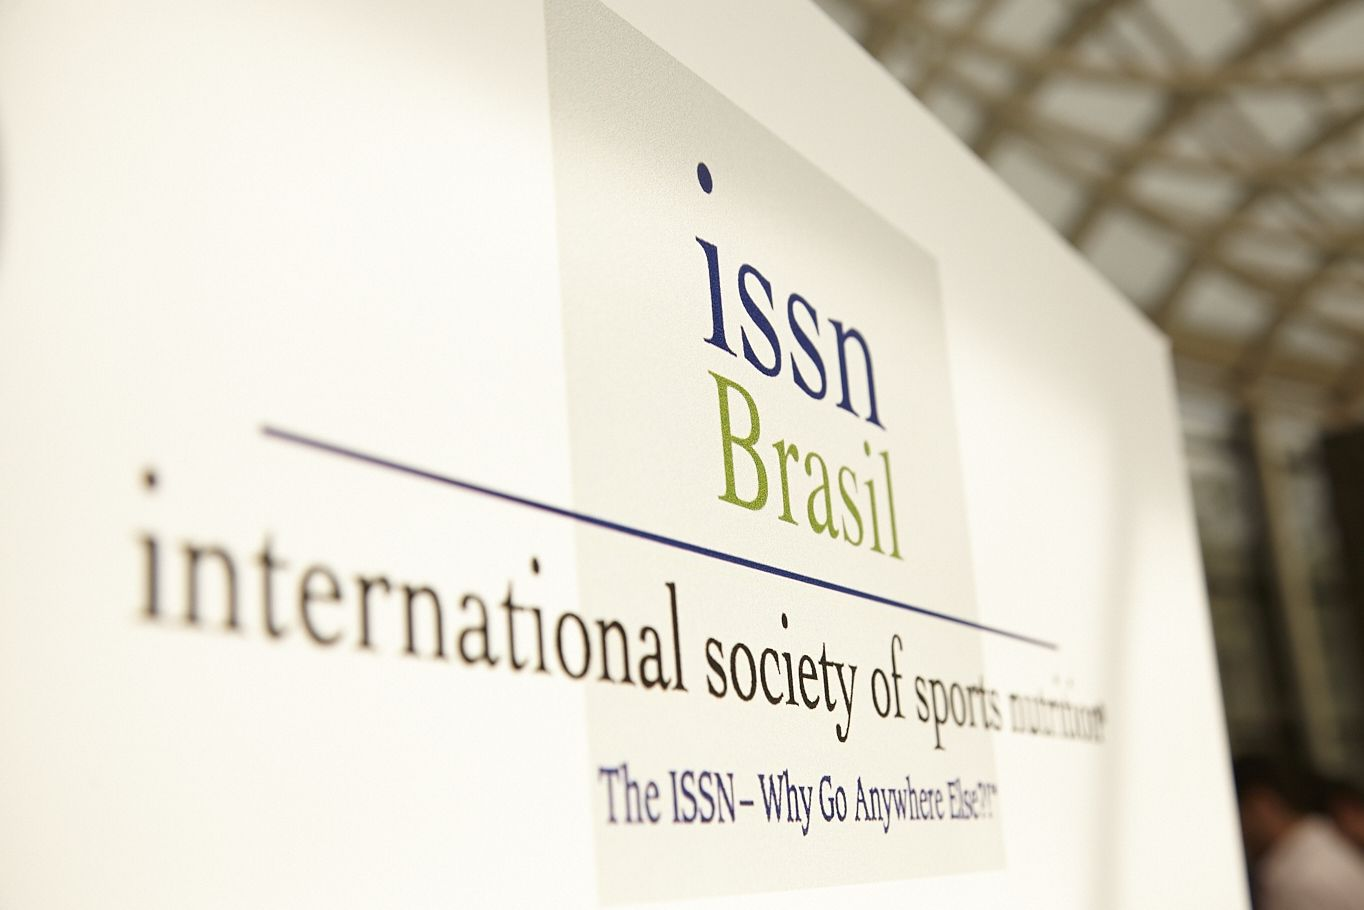 Congrats to ISSN for their successful conference in Brasilia, #Brazil!   You can purchase some #Brazilian #superfoods right here in the US!!!  Here is article here: http://www.theissnscoop.com/5-brazilian-superfoods-that-you-can-find-in-the-u-s-a/  Check my other nutrition articles and podcast at http://eepurl.com/bH2p19